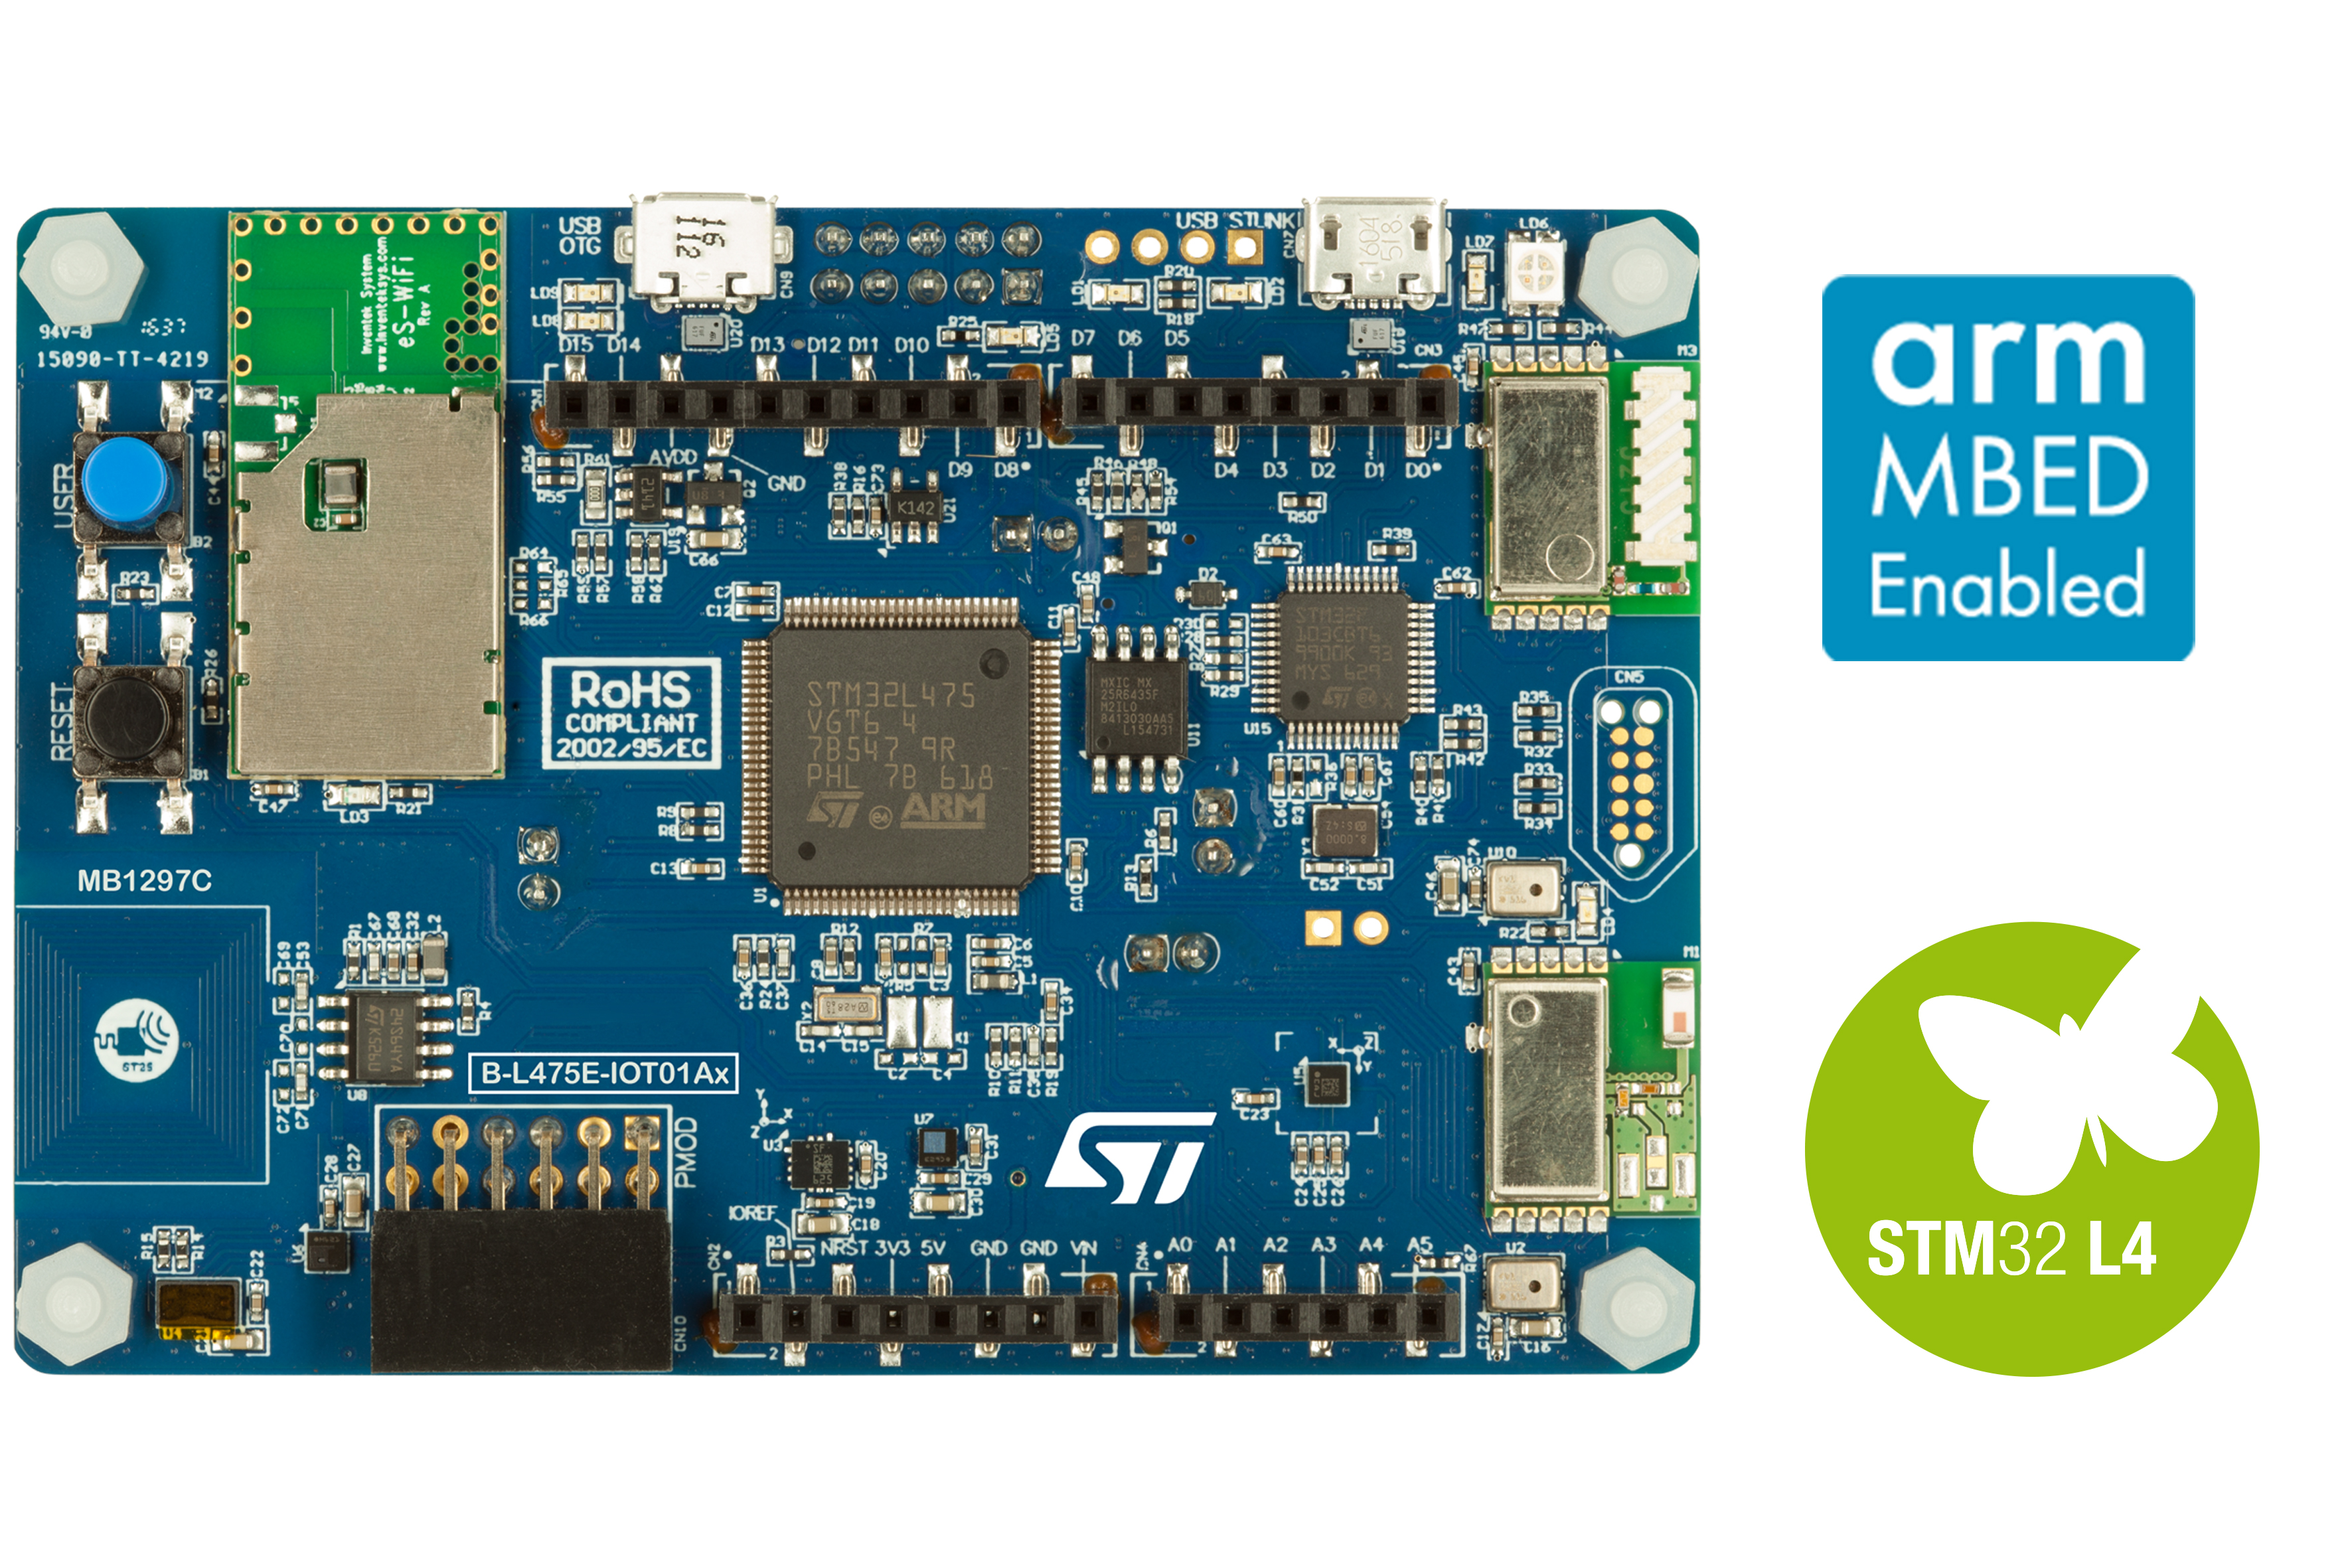 STM32L4 Discovery kit IoT node, low-power wireless, BLE, NFC, SubGHz, Wi-Fi